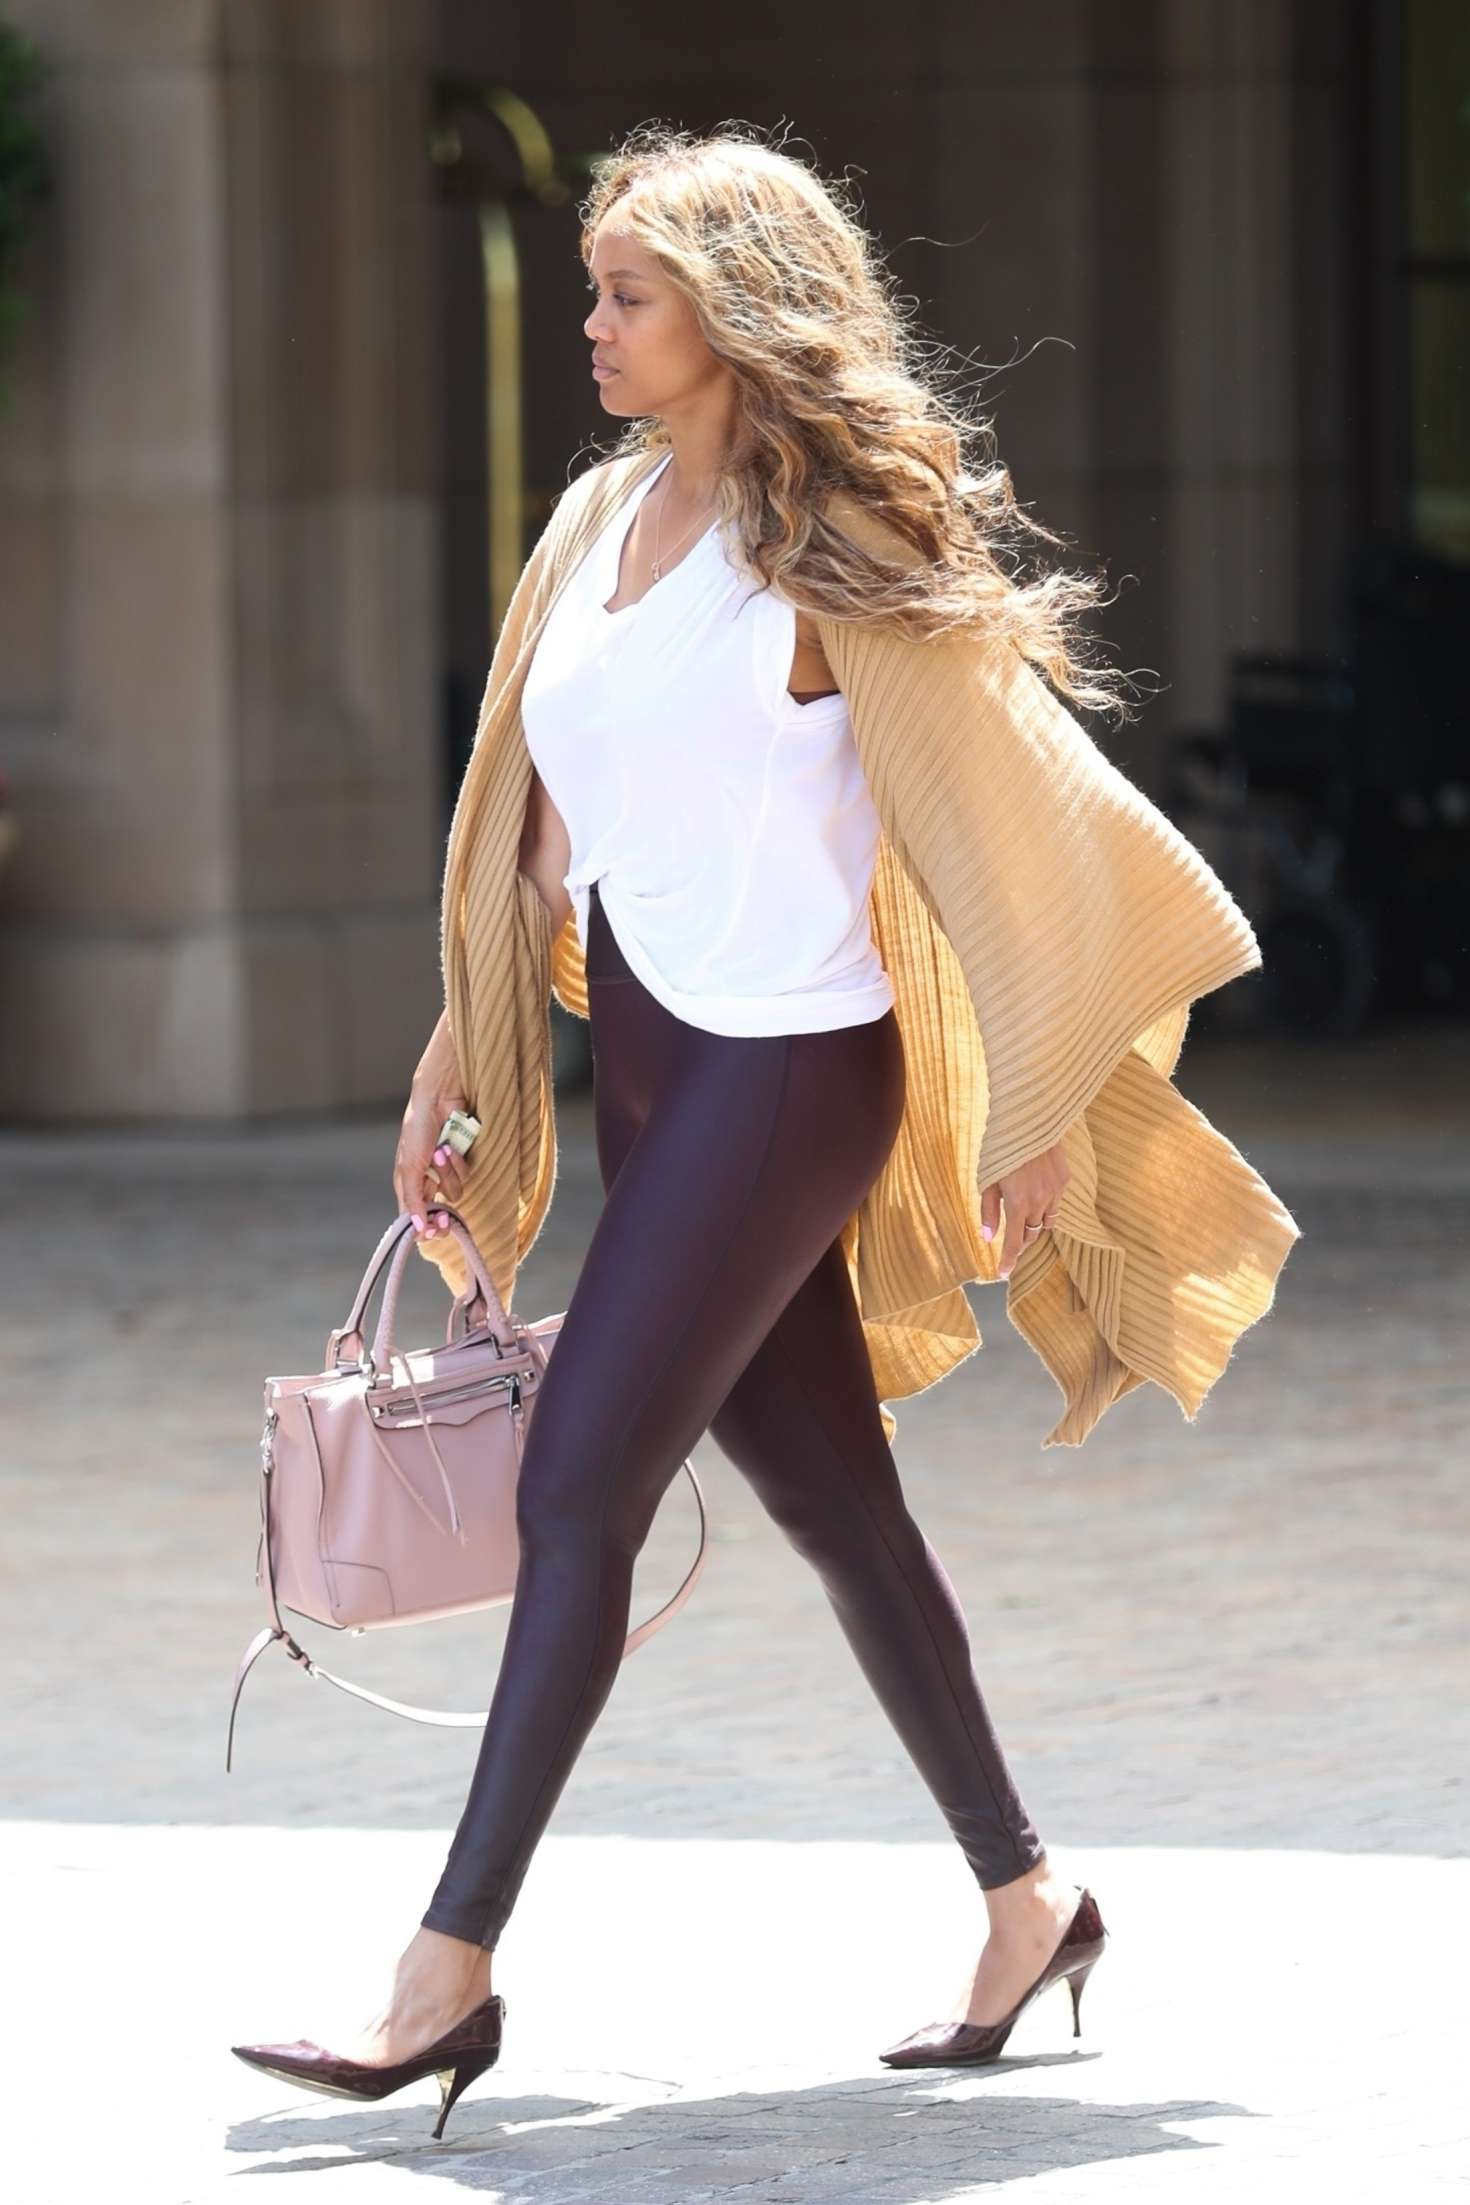 Tyra-Banks_-Grabs-Some-Lunch-at-Montage--02.jpg